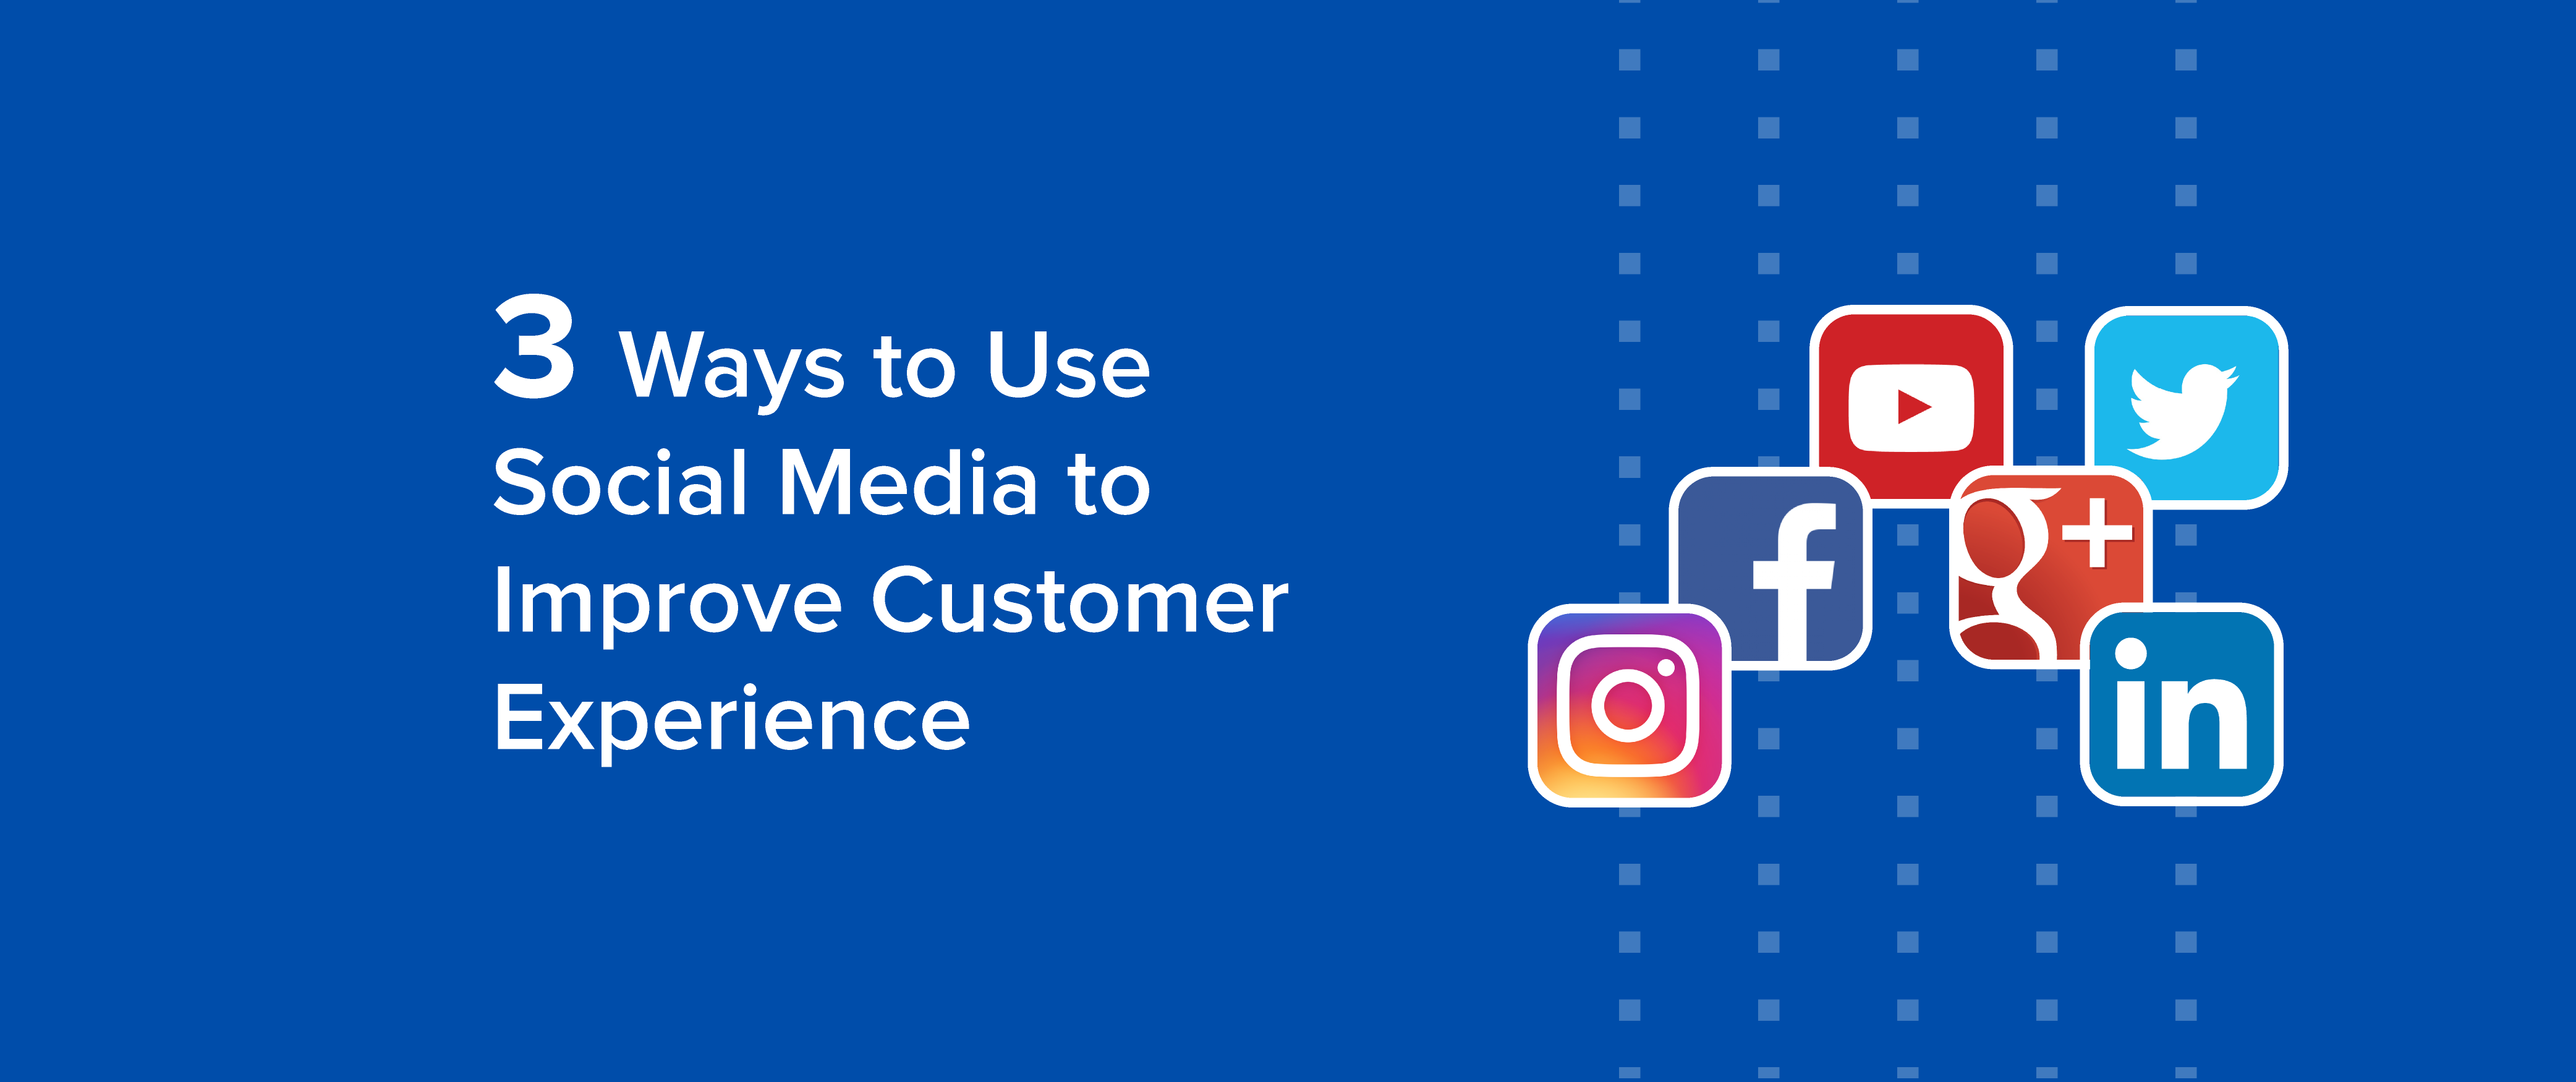 3 Ways to Use Social Media to Improve Customer Experience